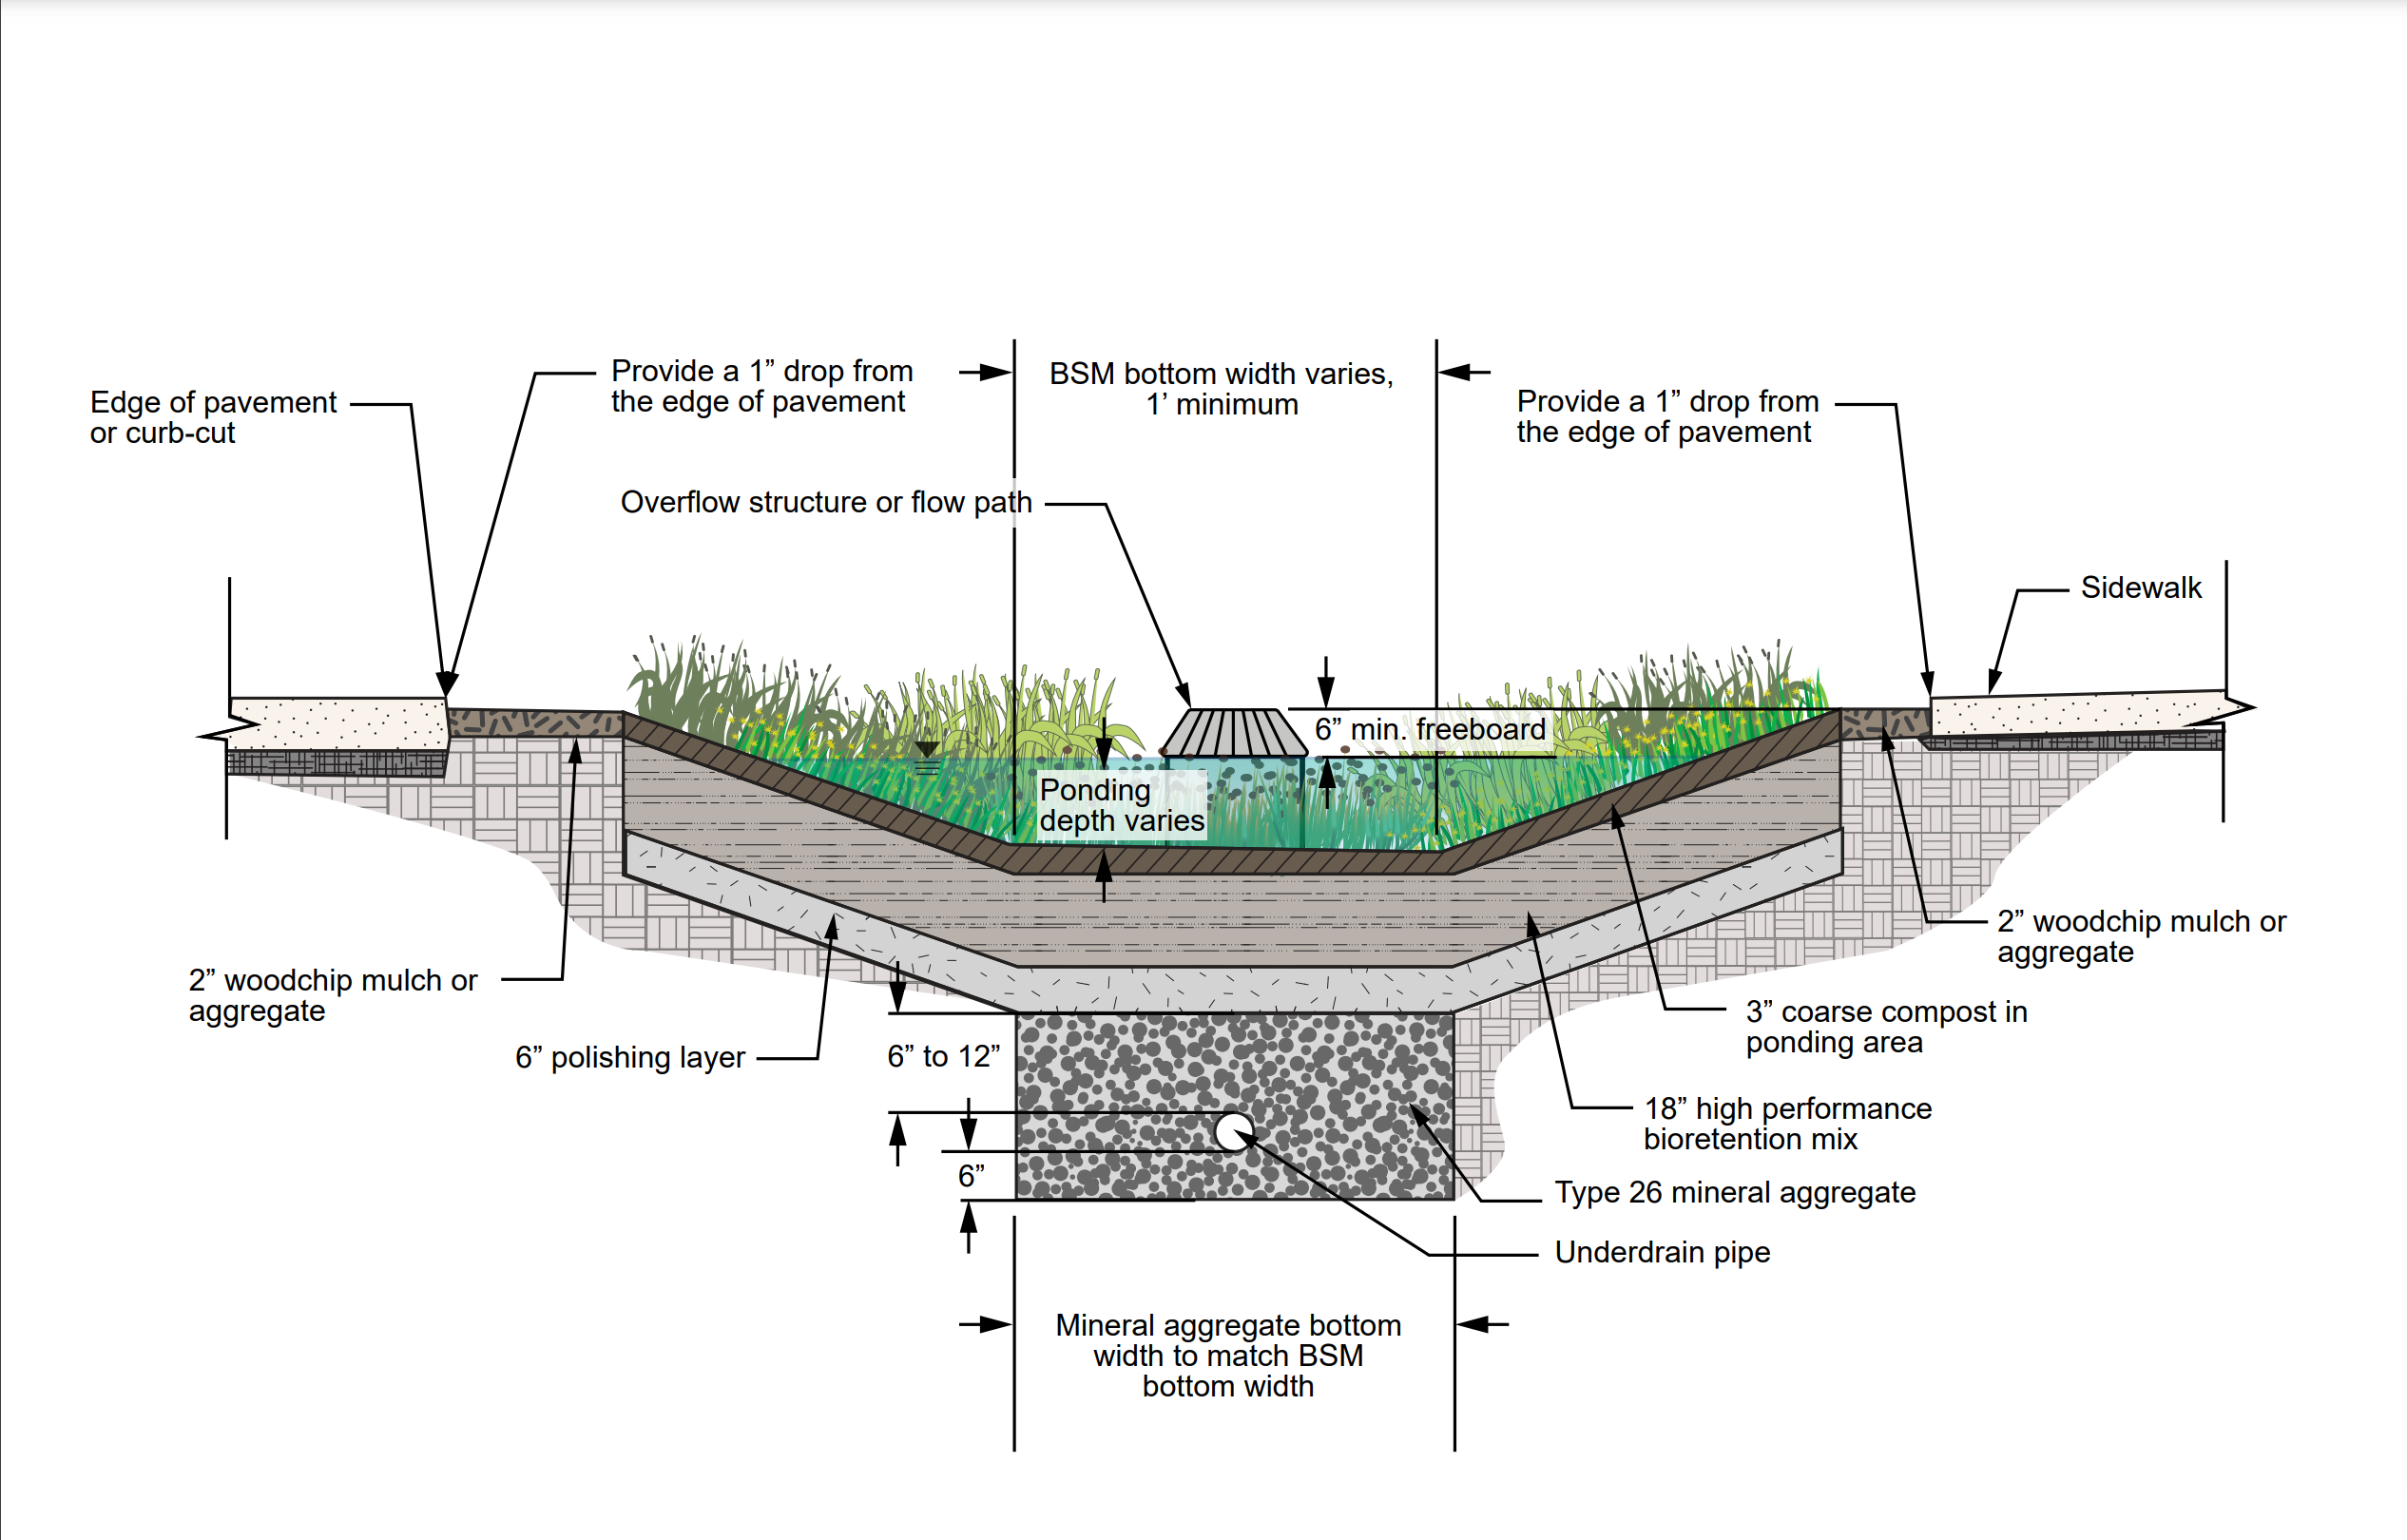 A new typical bioretention cross section showing the layered HPBSM.